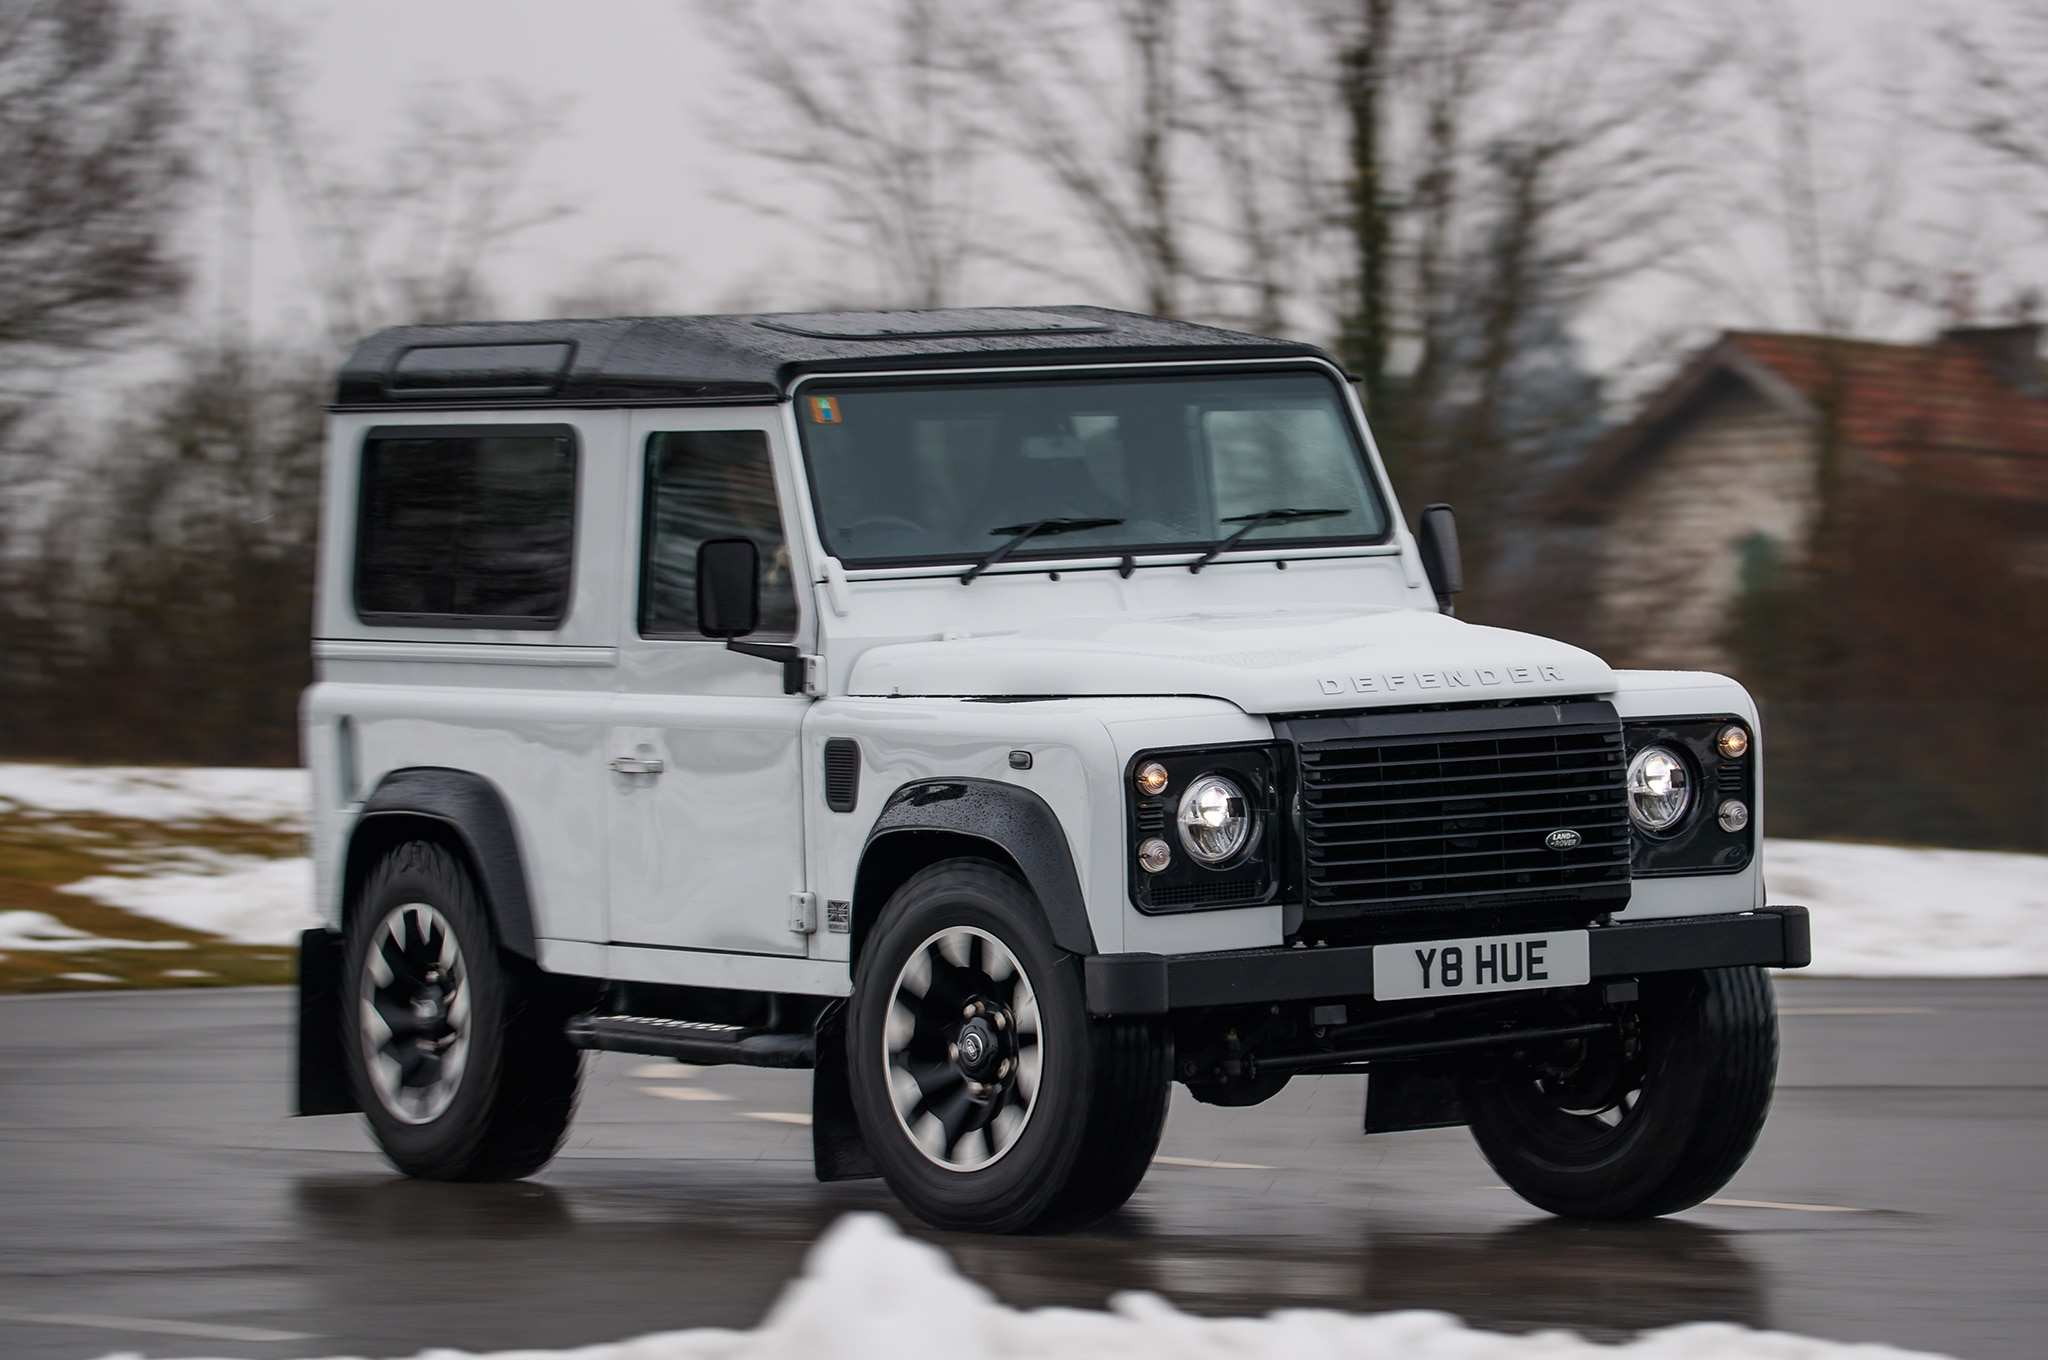 63 The Best 2019 Land Rover Defender Price Redesign And Review